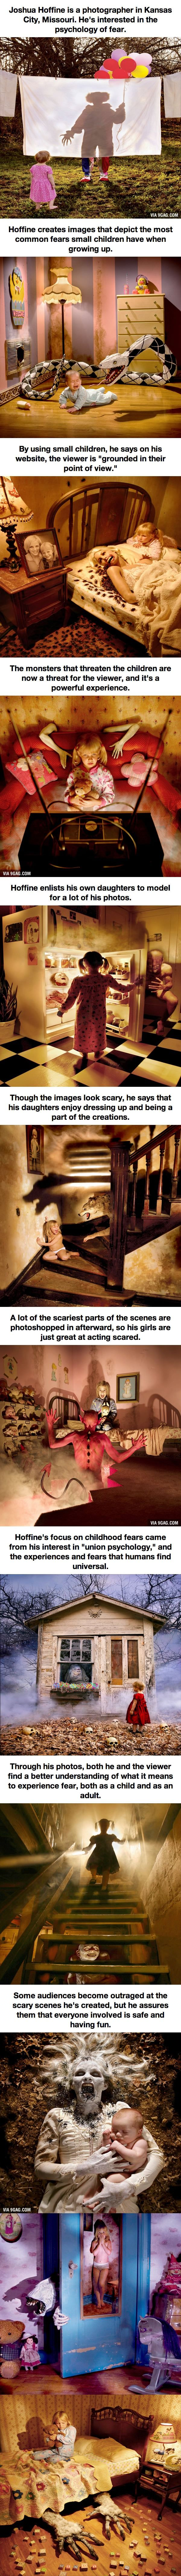 12 Seriously Disturbing Pictures Of Children's Nightmares. My body got more tense with each picture.  So scary